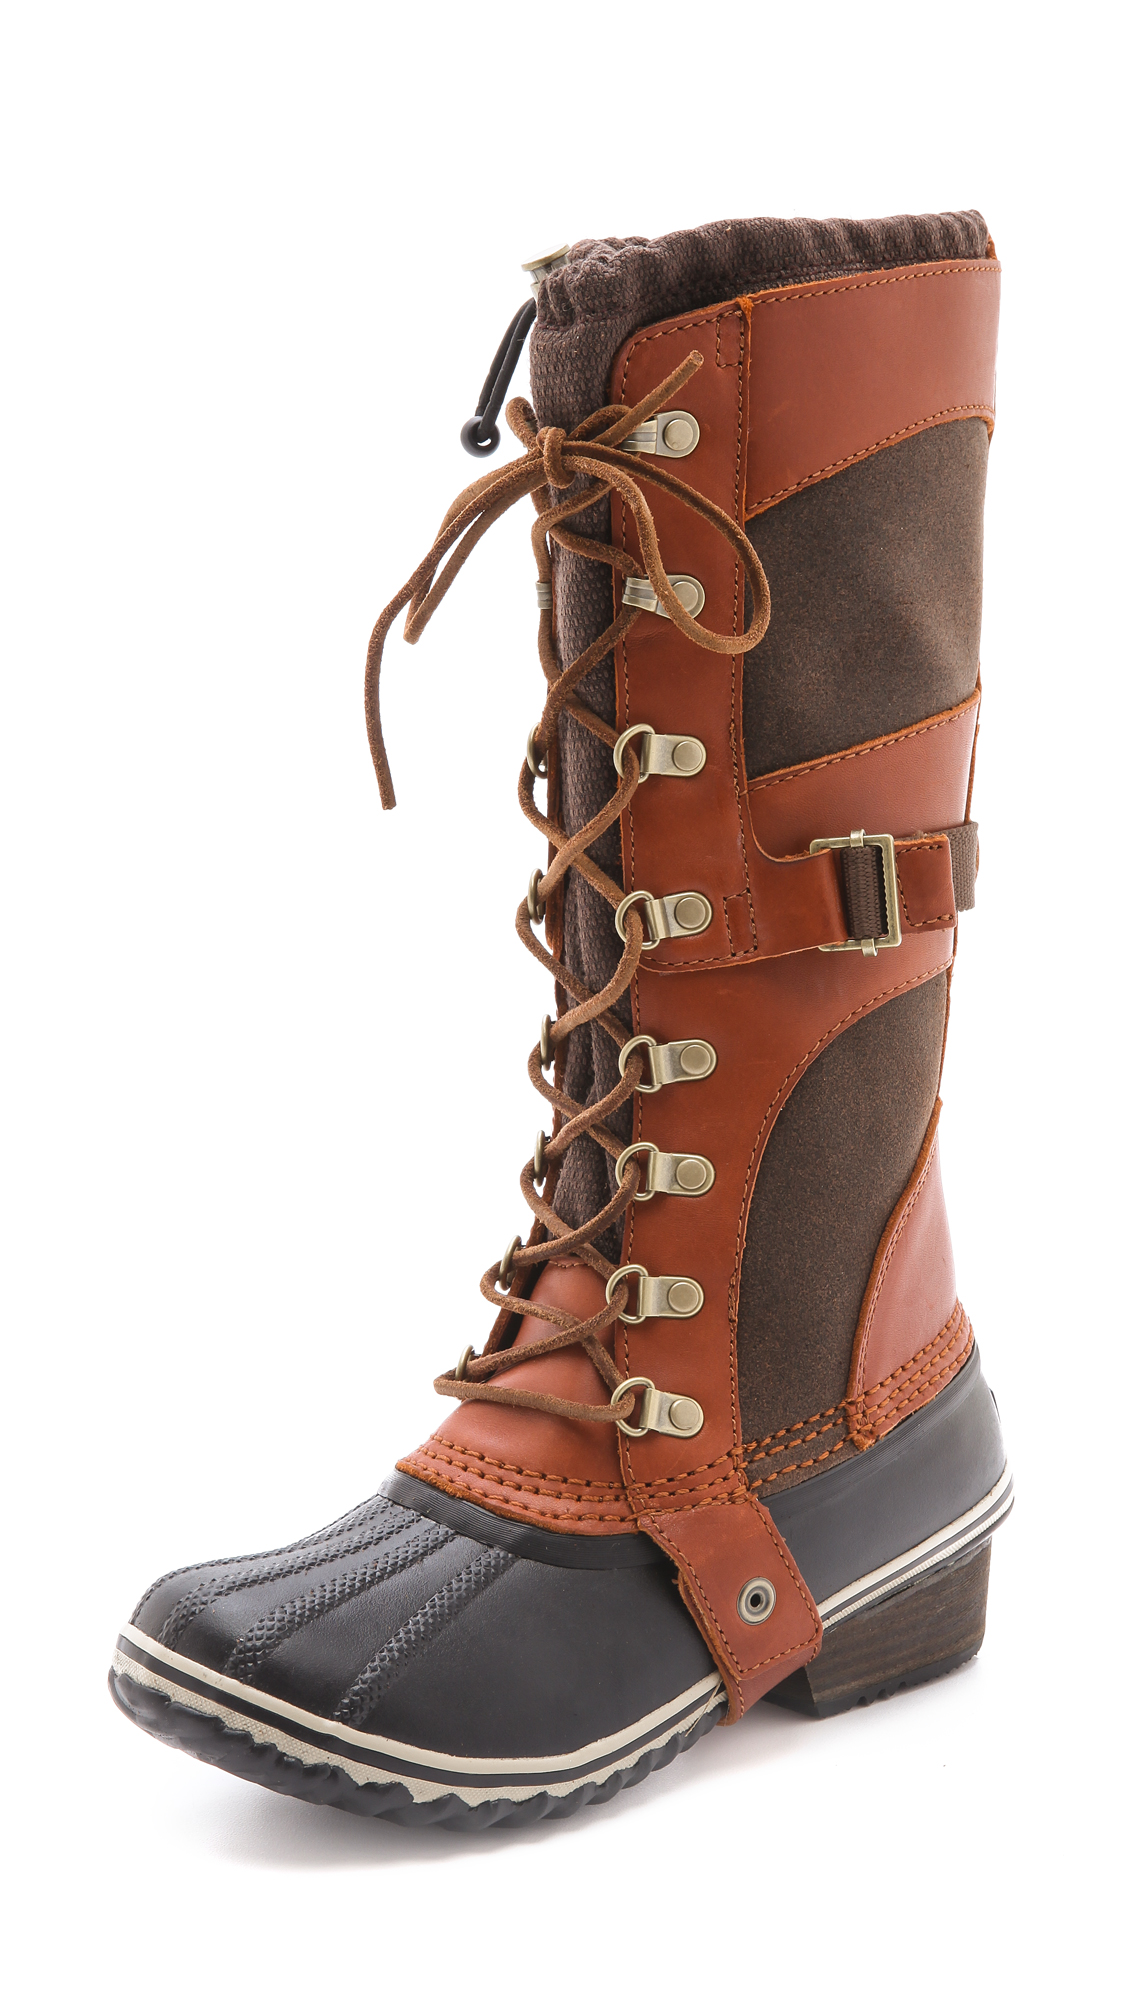 New Sorel Womens Conquest Carly Boot Cinnamon Size 6